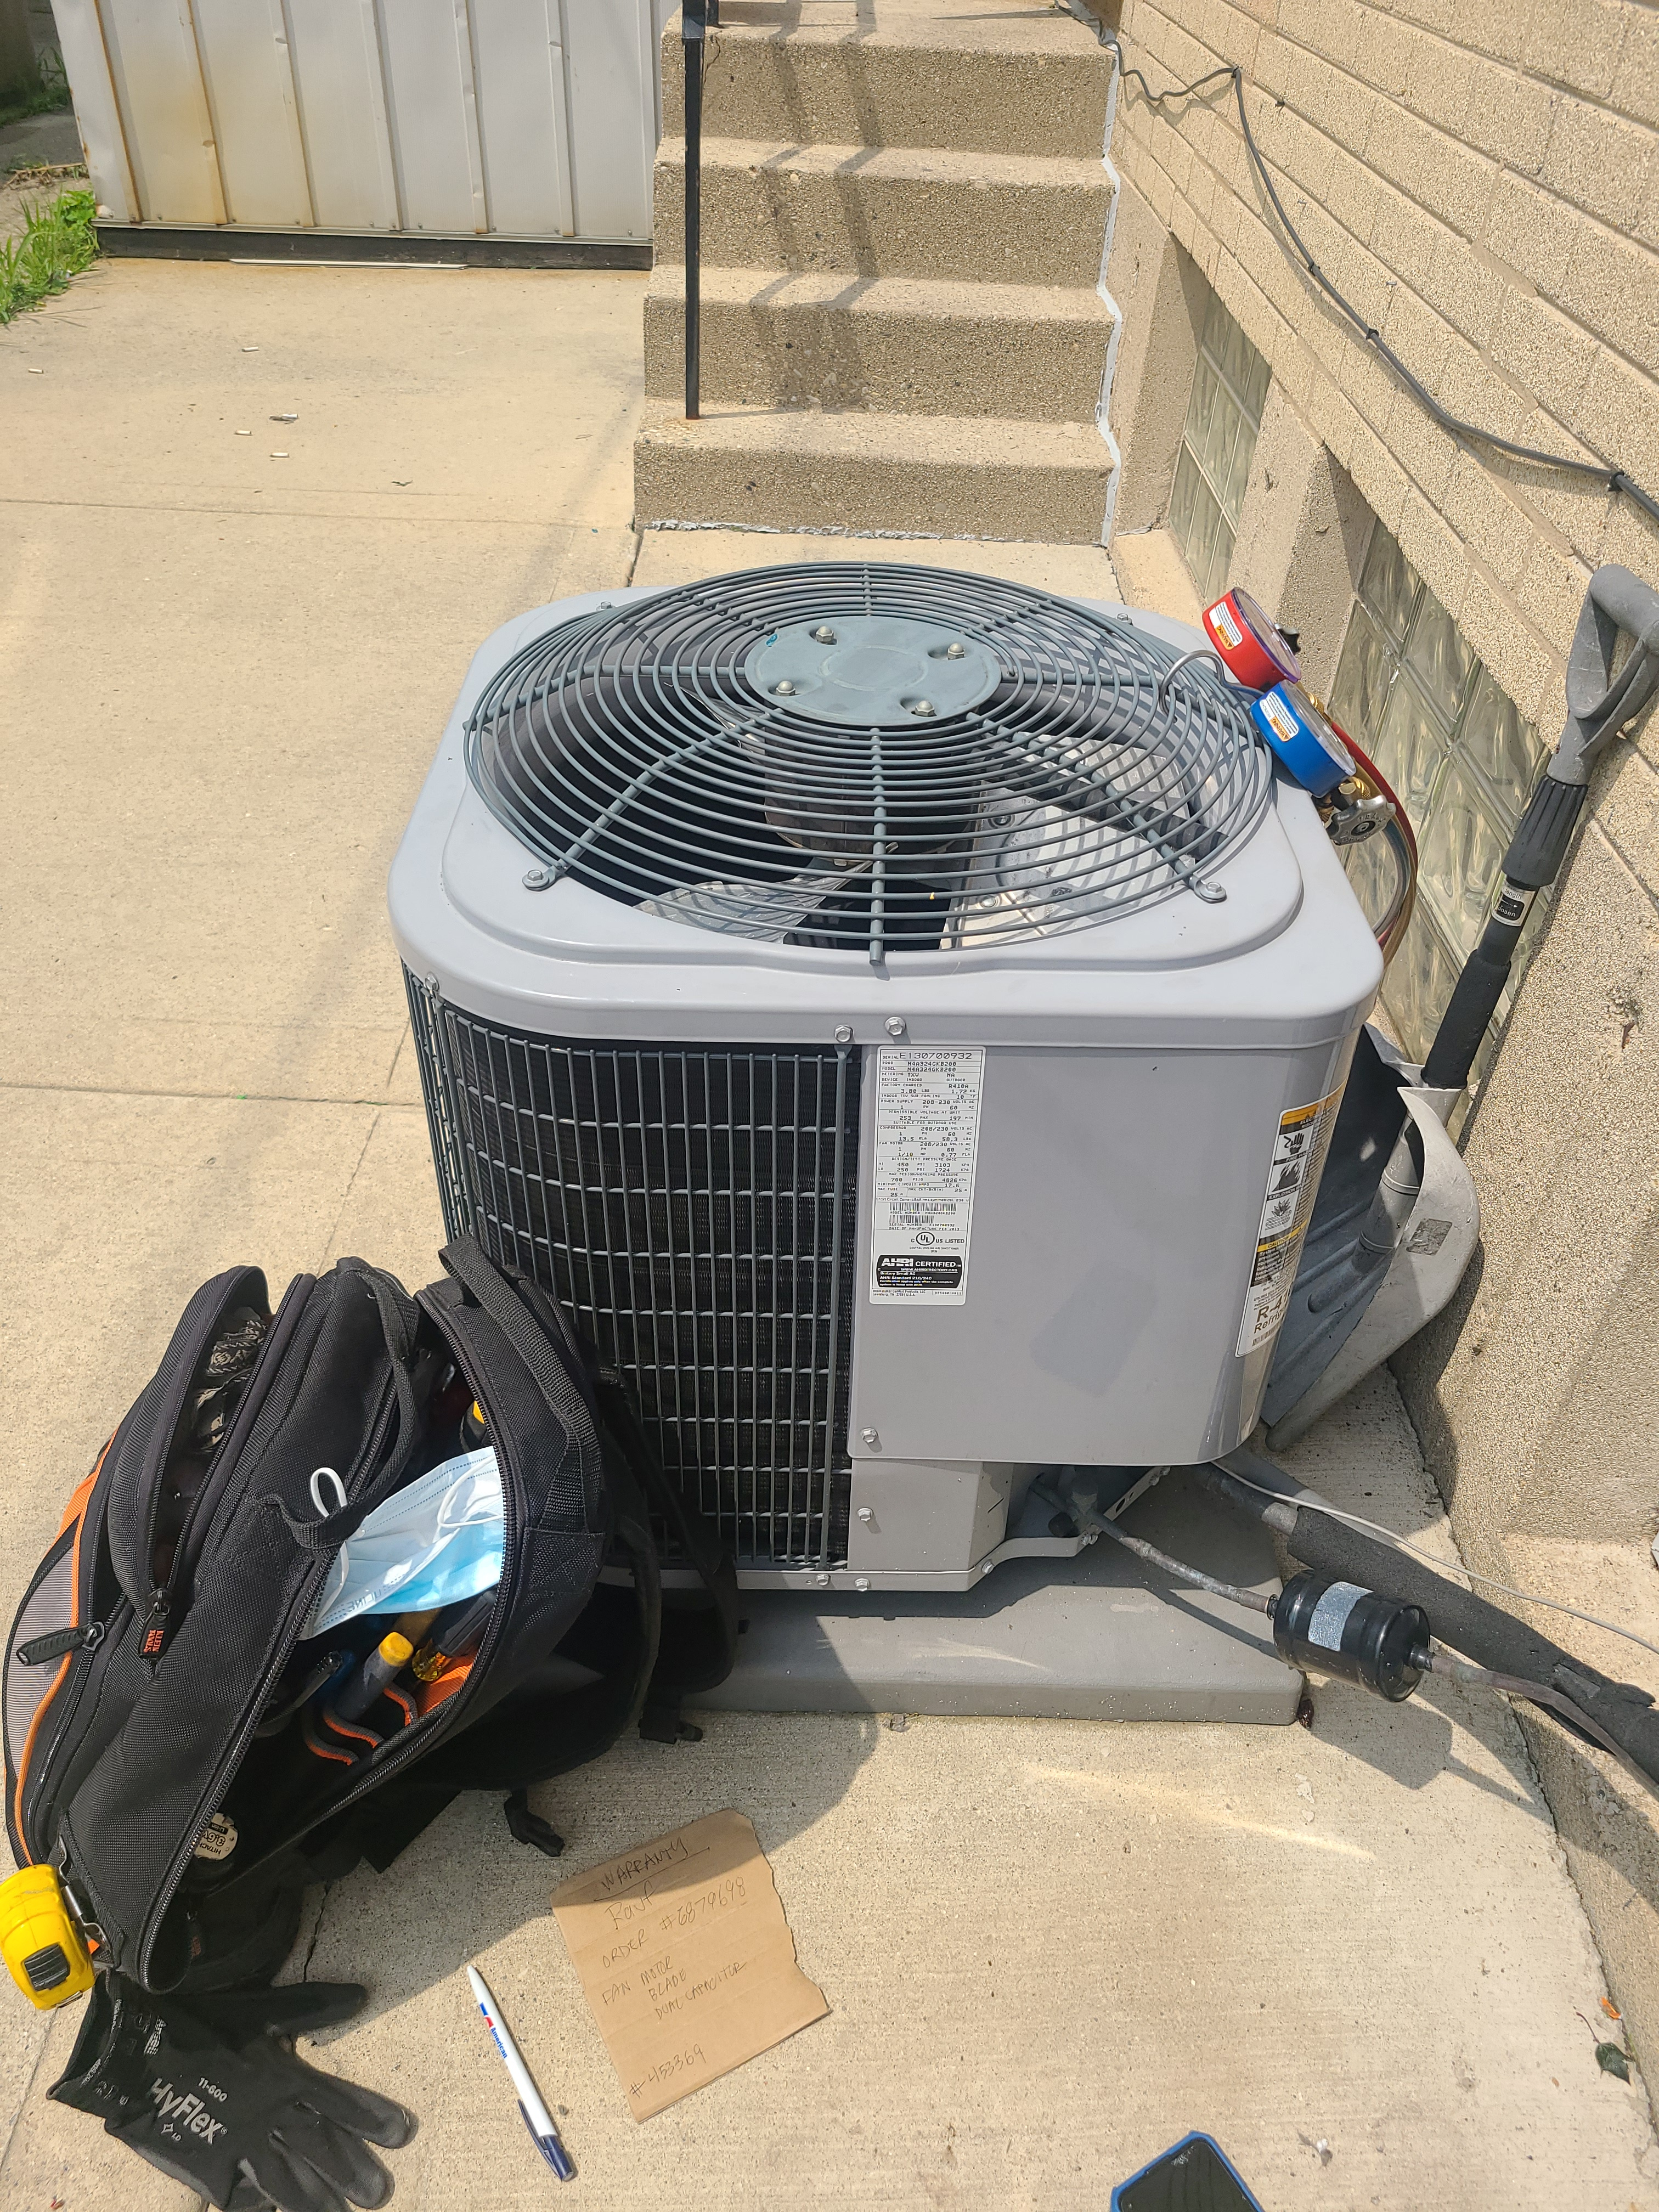 Repairs to Kenmore AC in Niles. Unit under warranty.